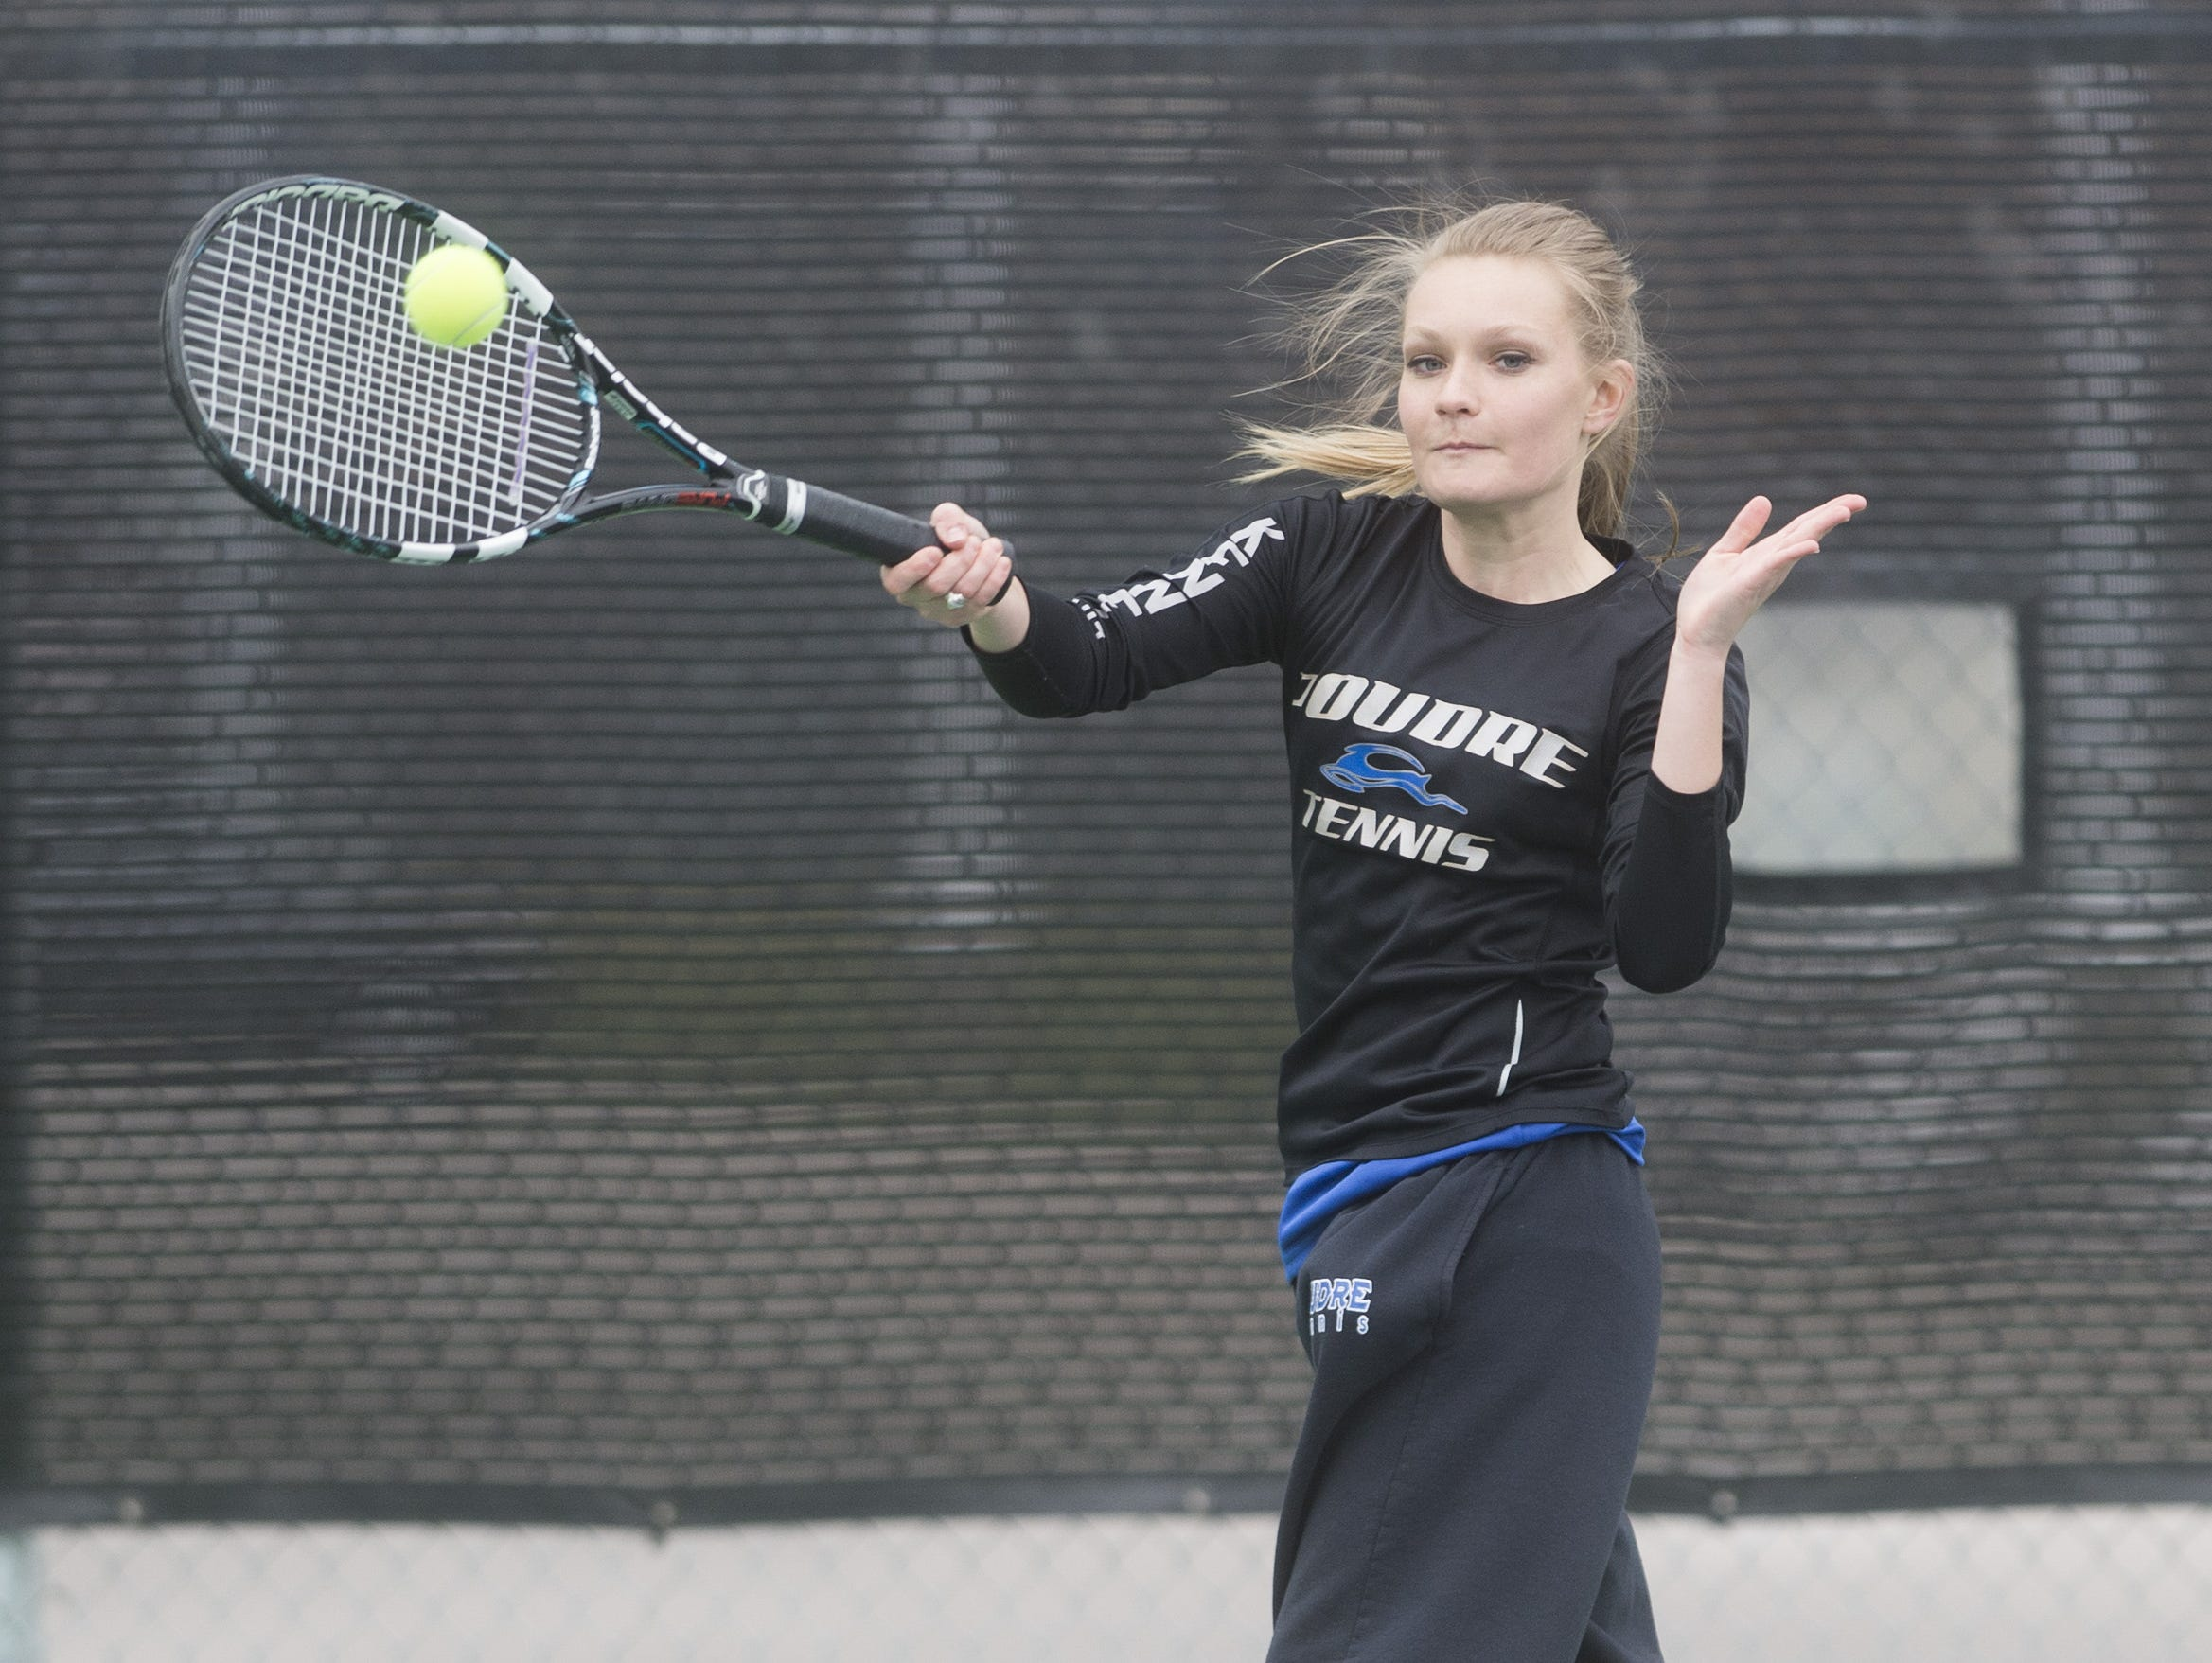 Emily Kenney of Poudre takes on a Rocky Mountain High School doubles team during a match Tuesday, March 29, 2016.